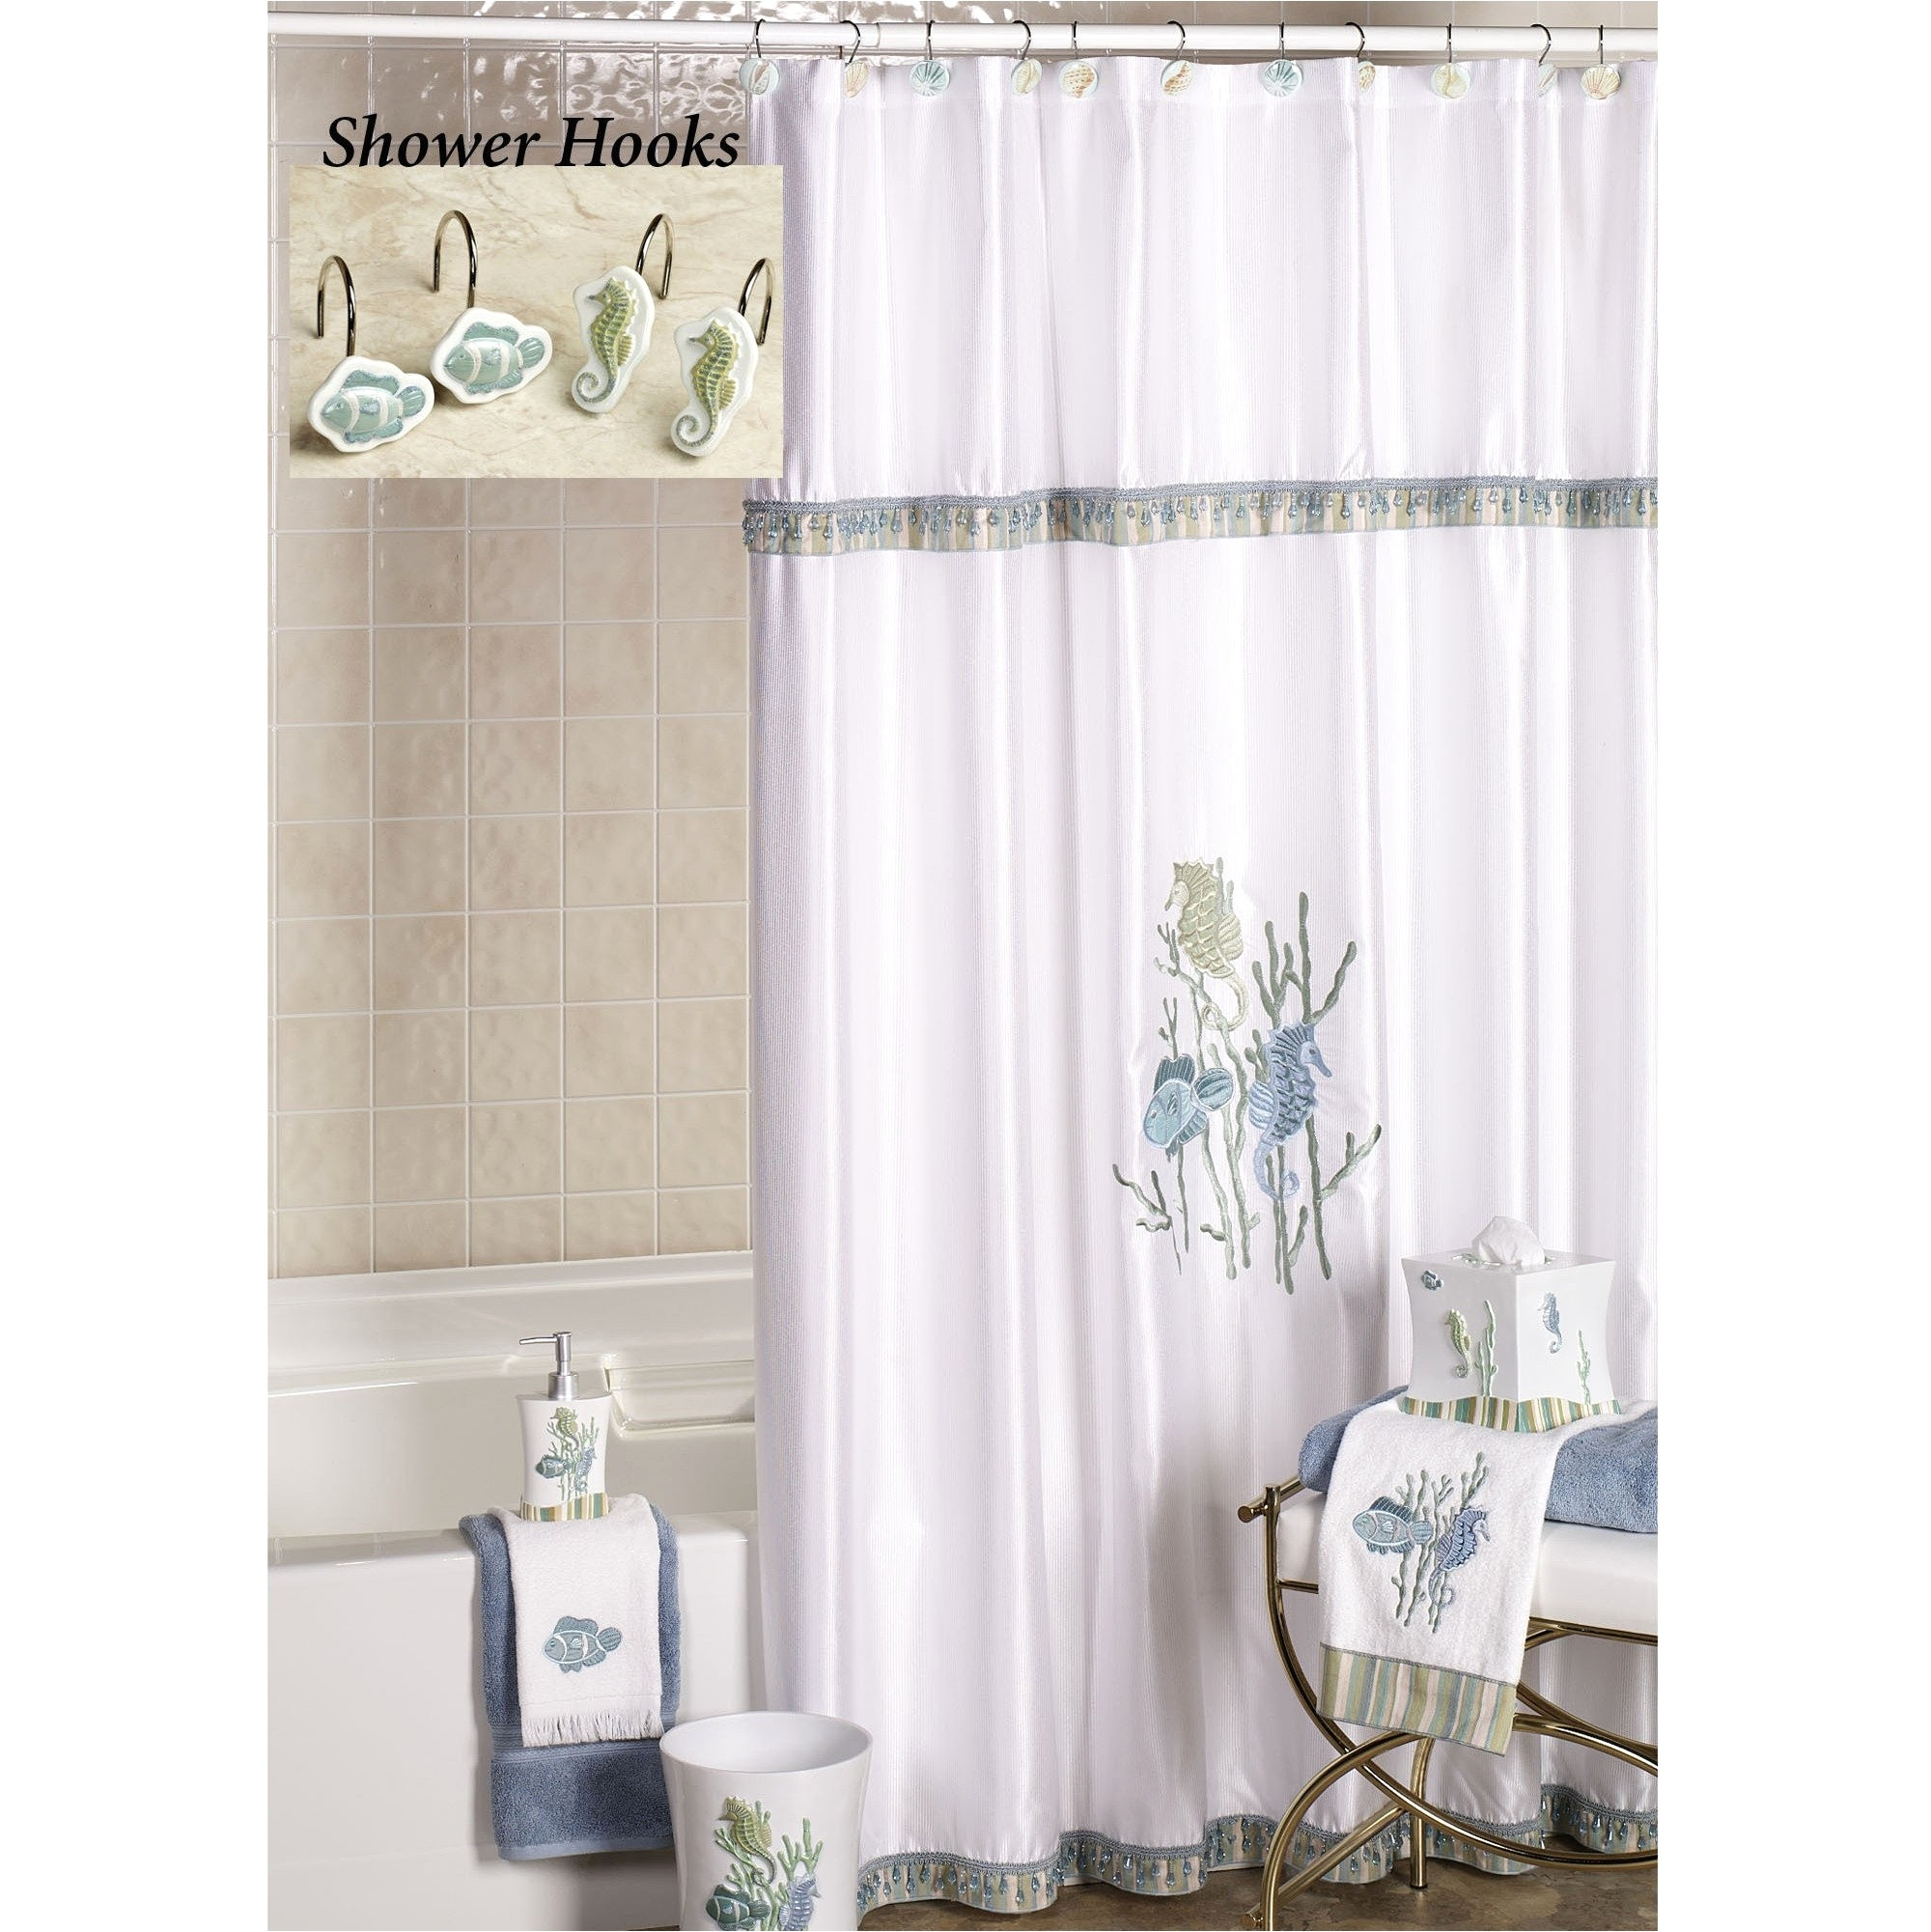 Bathroom Window Curtain Sets Inspirational Unique Shower And Curtains Portrait